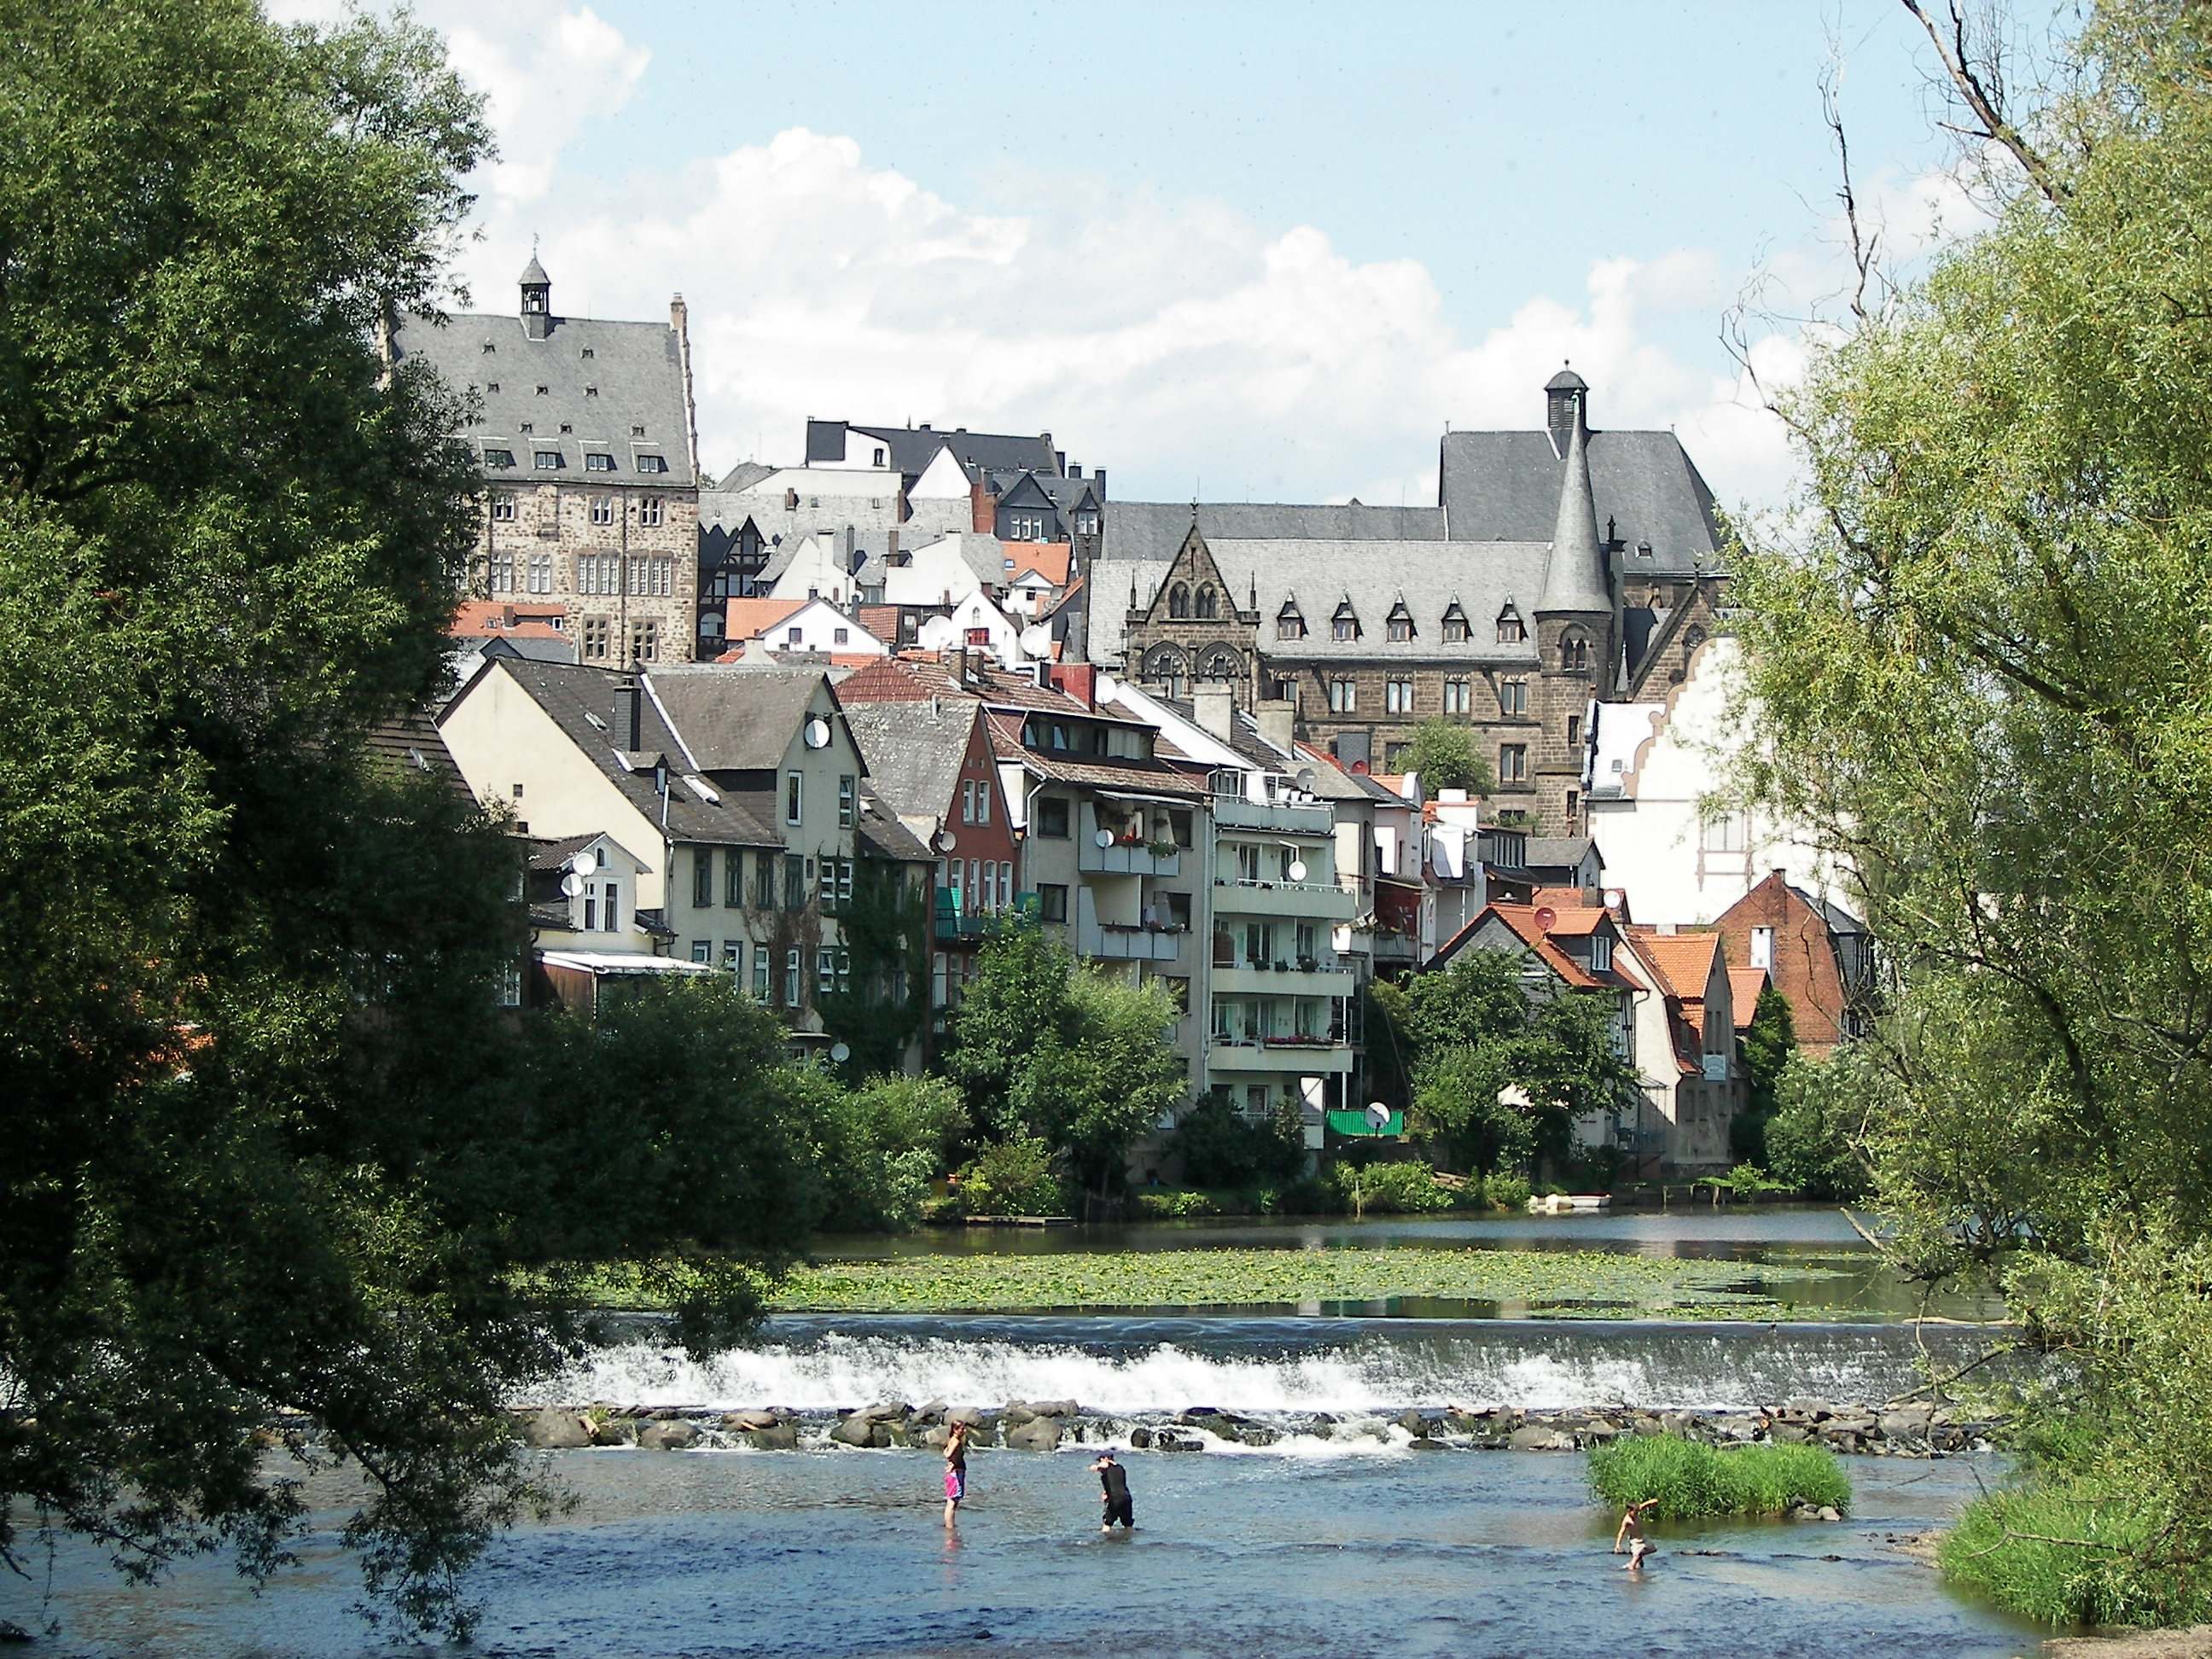 Marburg an der Lahn Germany  City pictures : Marburg Lahn 05 Wikipedia, the free encyclopedia